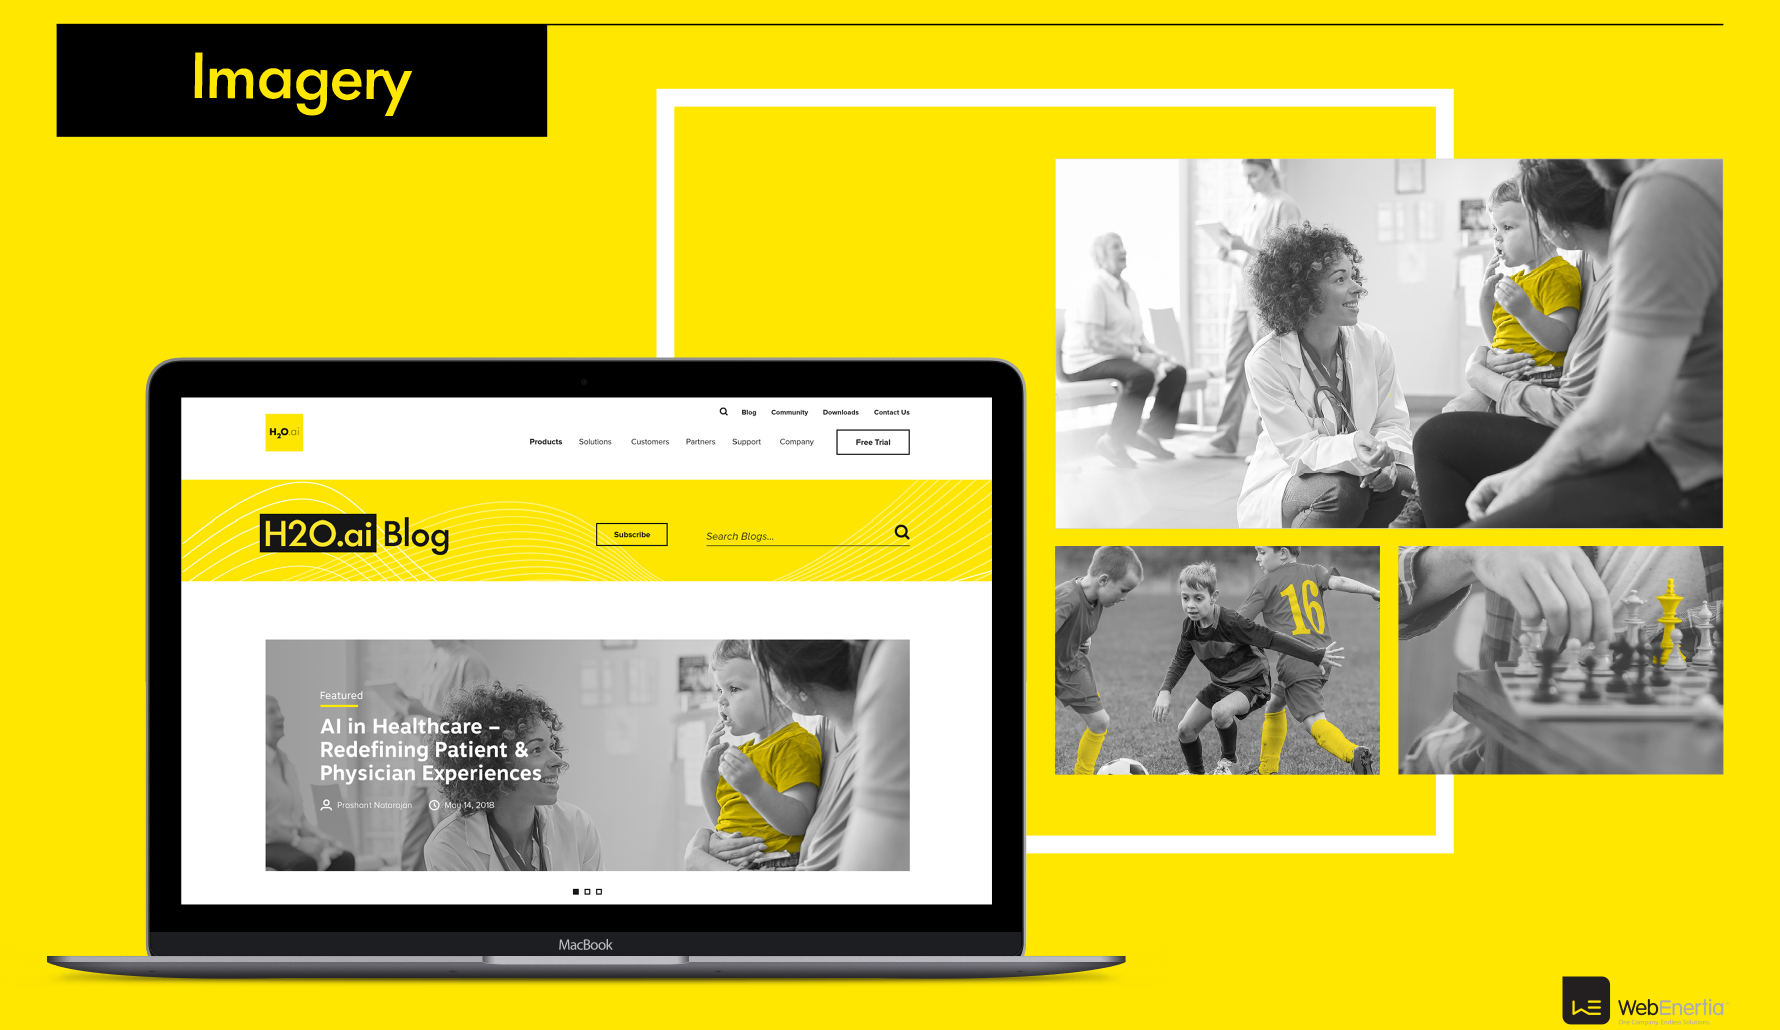 H2O.ai Brand Update & Guidelines imagery greyscale with yellow accents